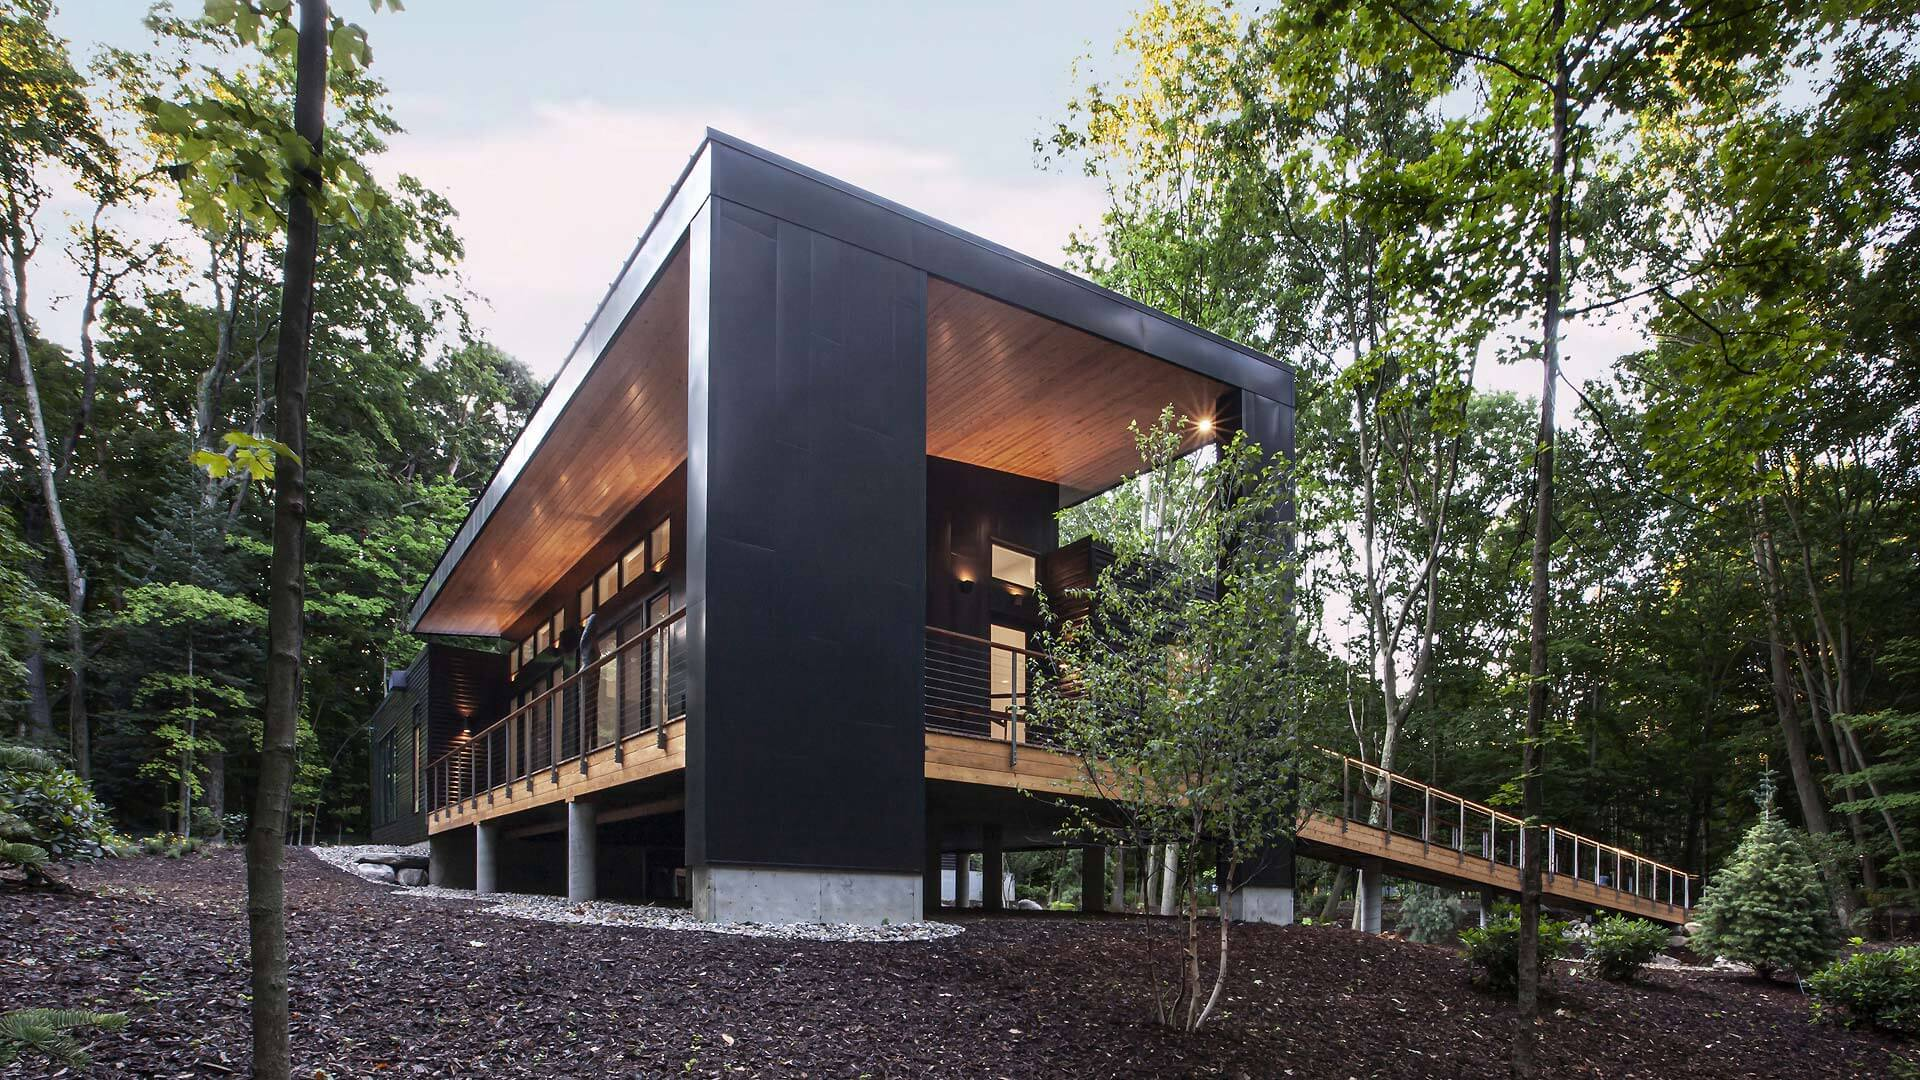 Entry Pier and West Porch overlook Pier Cove Valley - Bridge House - Fennville, Michigan - Lake Michigan - HAUS | Architecture For Modern Lifestyles